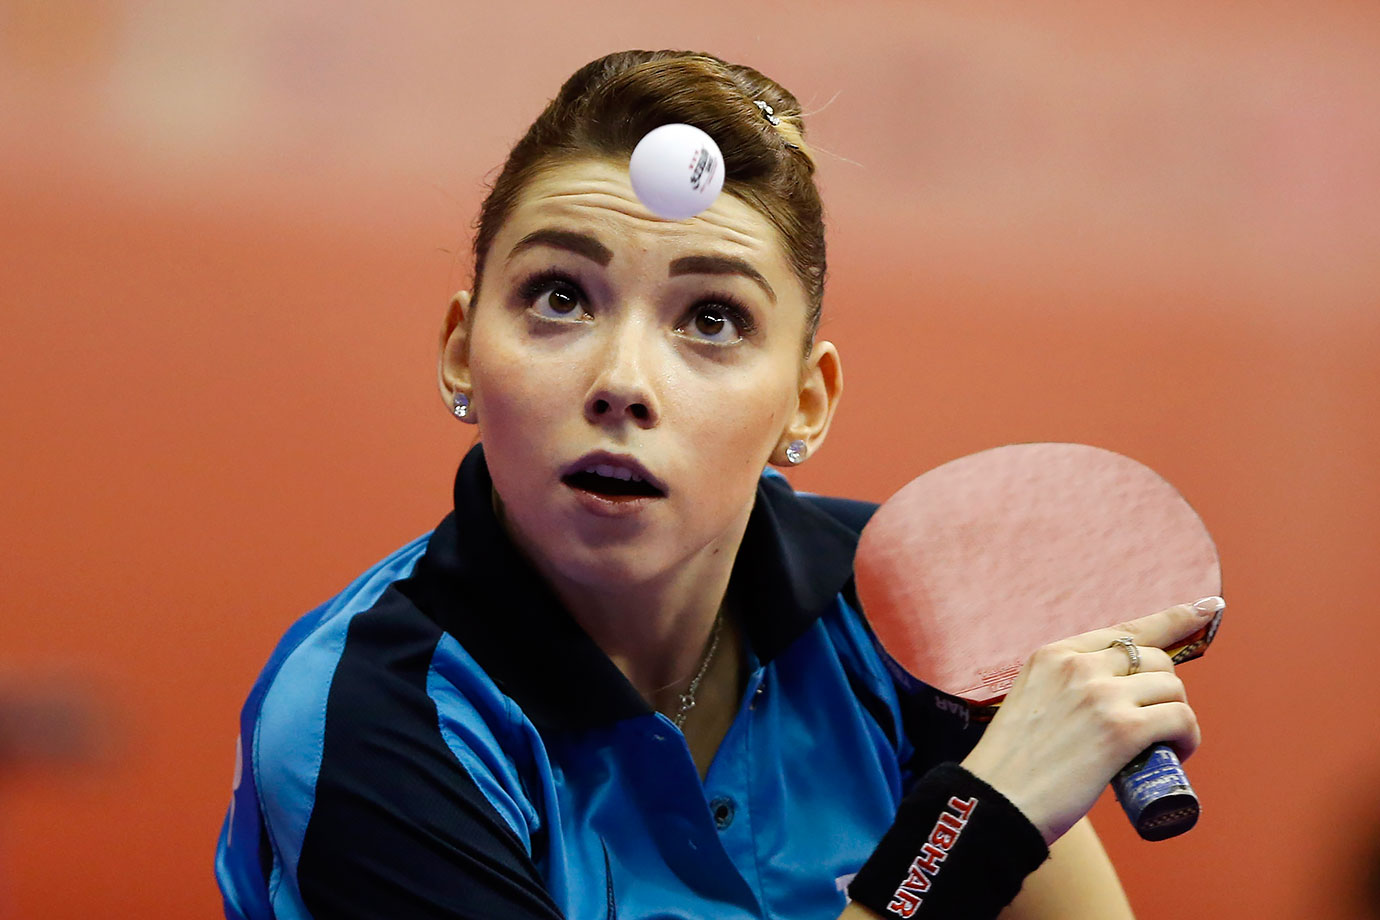 Romania's Bernadette Szocs returns a ball against China's LI Xiaoxia during the women's team table tennis championship in Kuala Lumpur, Malaysia.